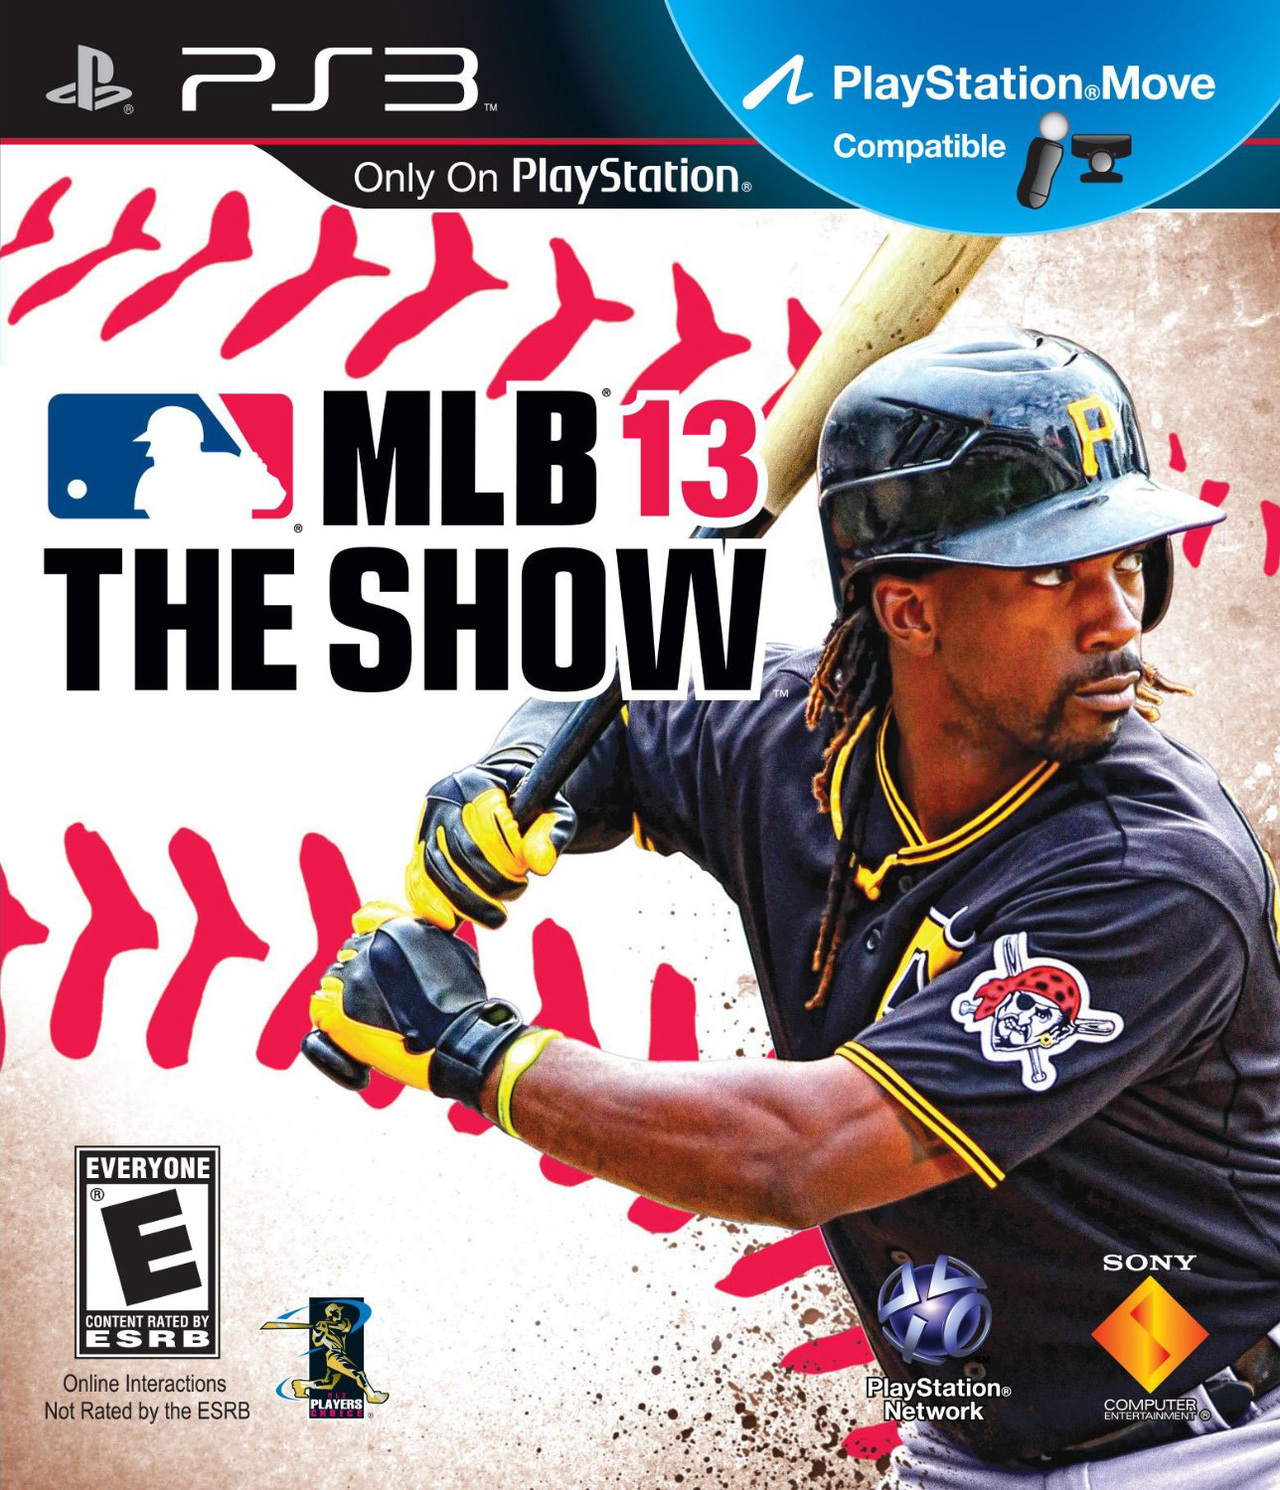 MLB13-TheShow PS3 Jaquette 001